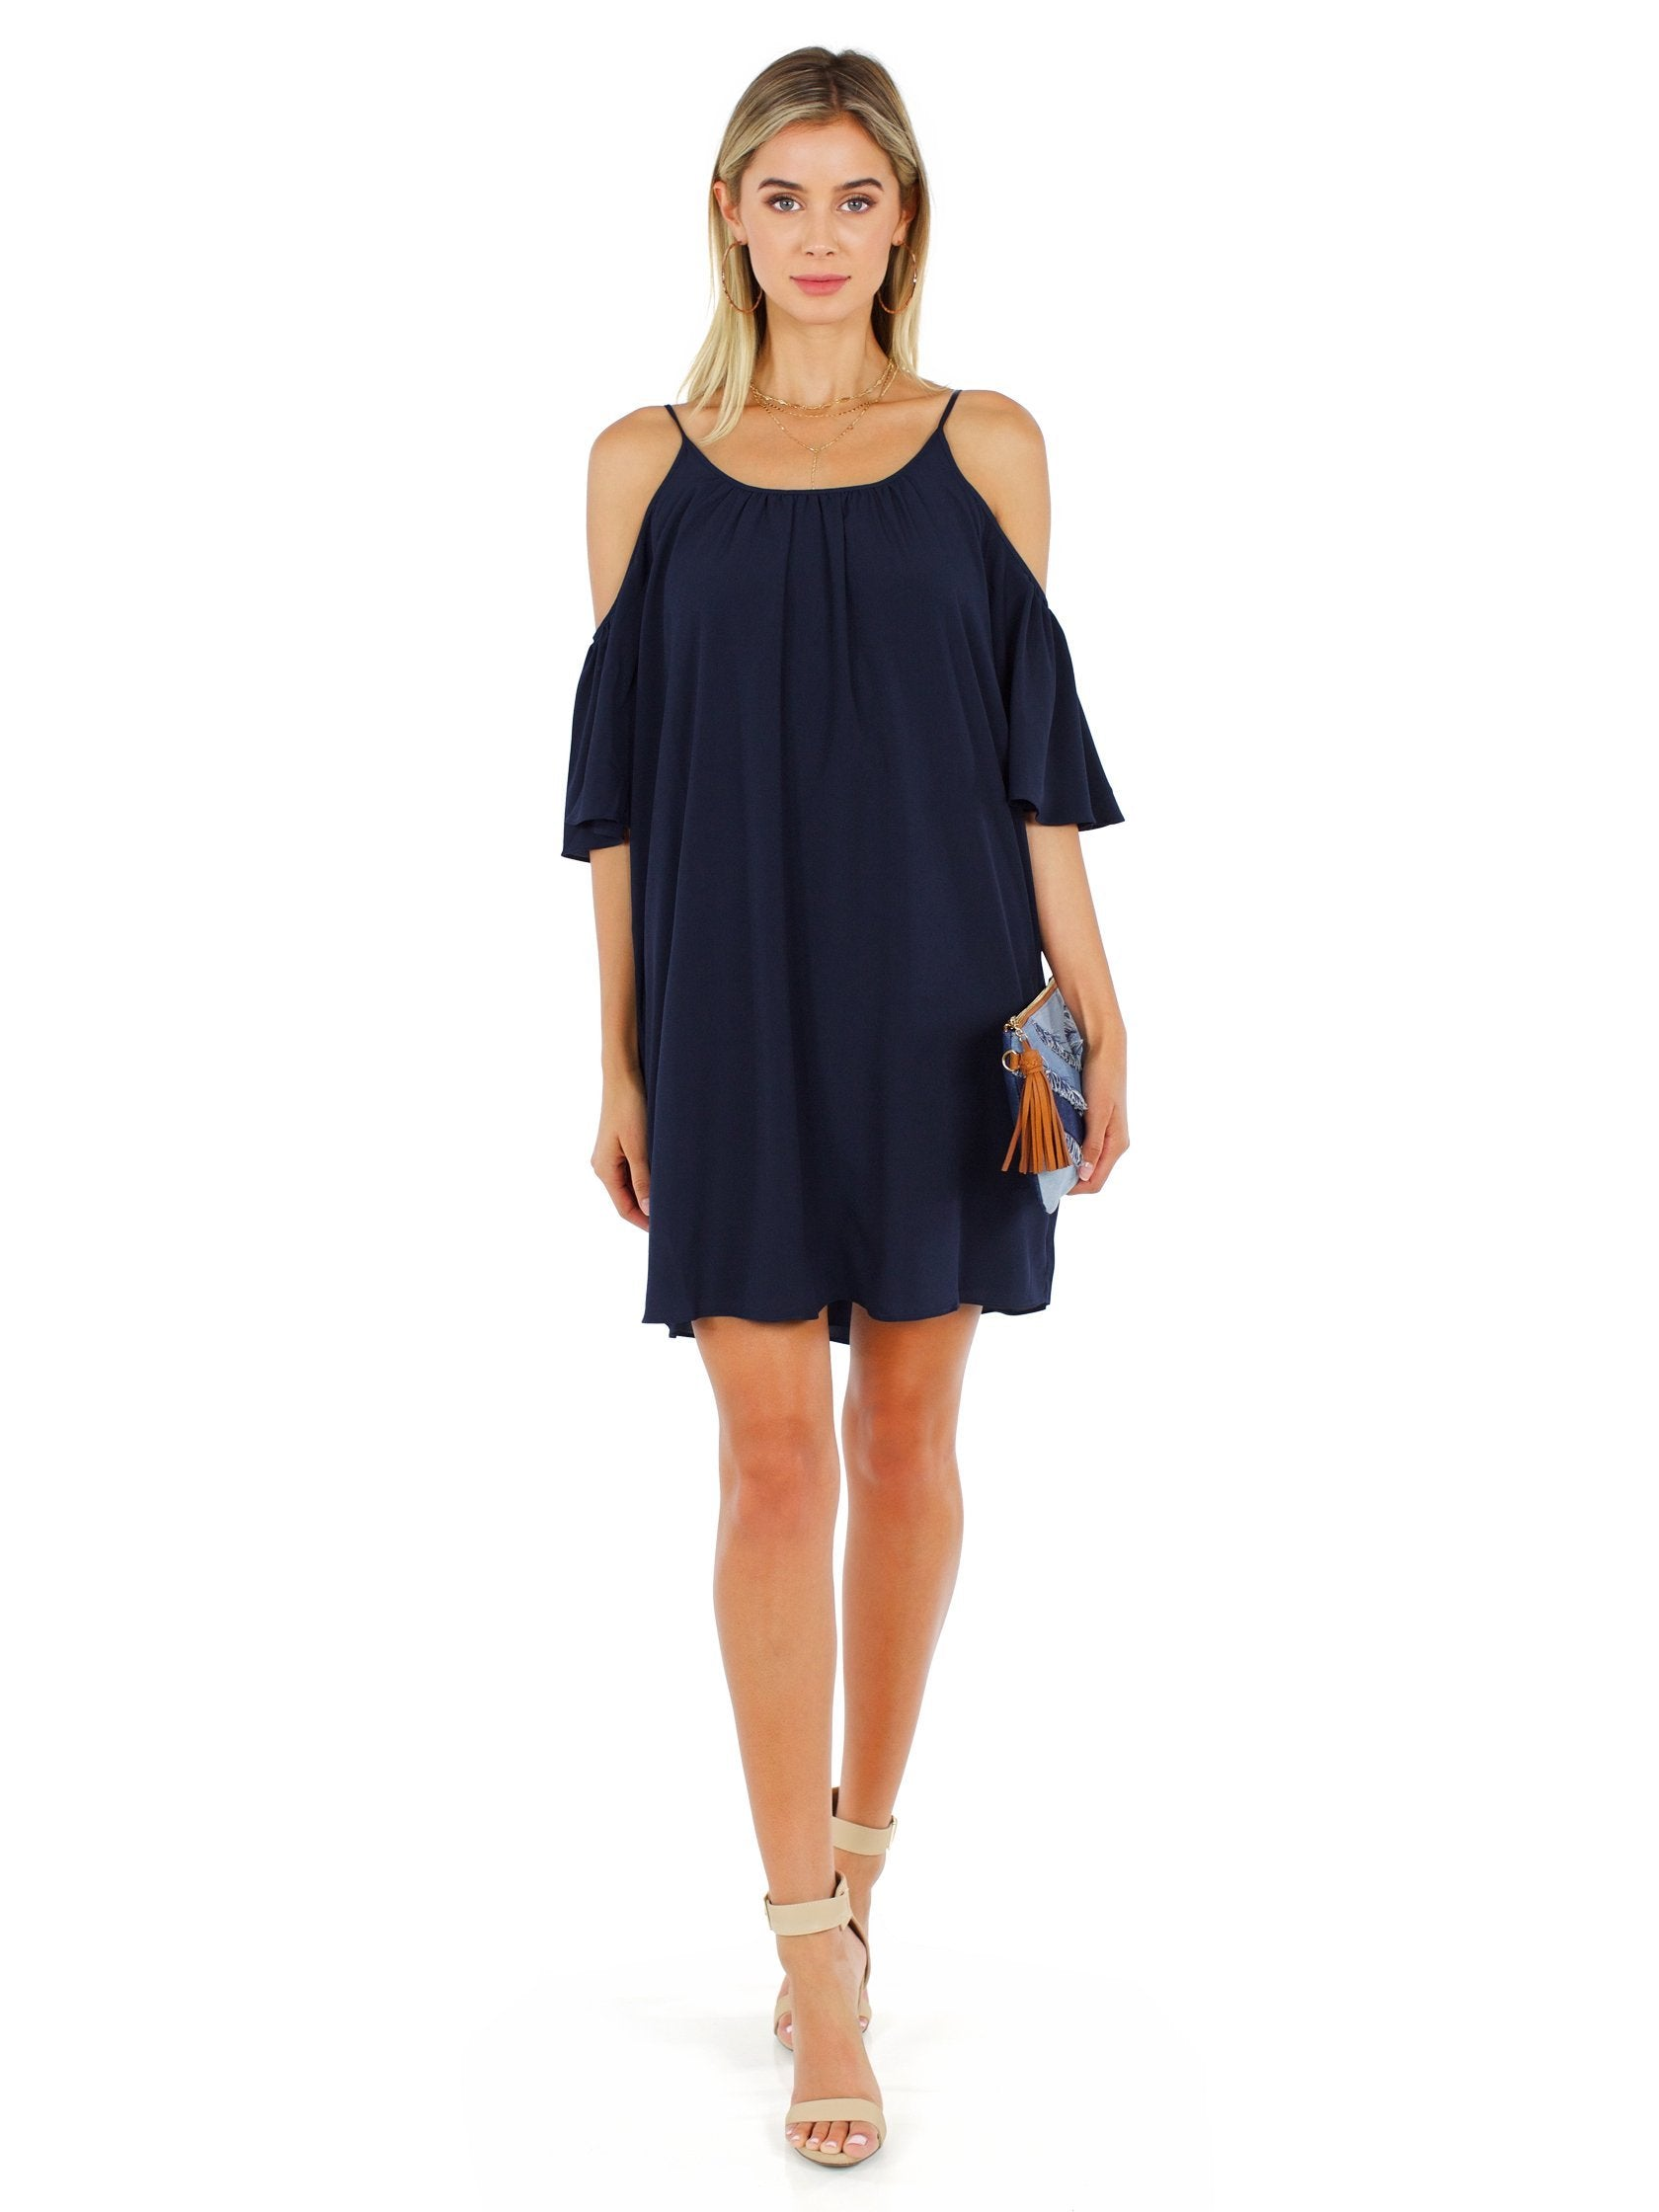 Girl outfit in a dress rental from French Connection called Polly Plains Cold Shoulder Dress